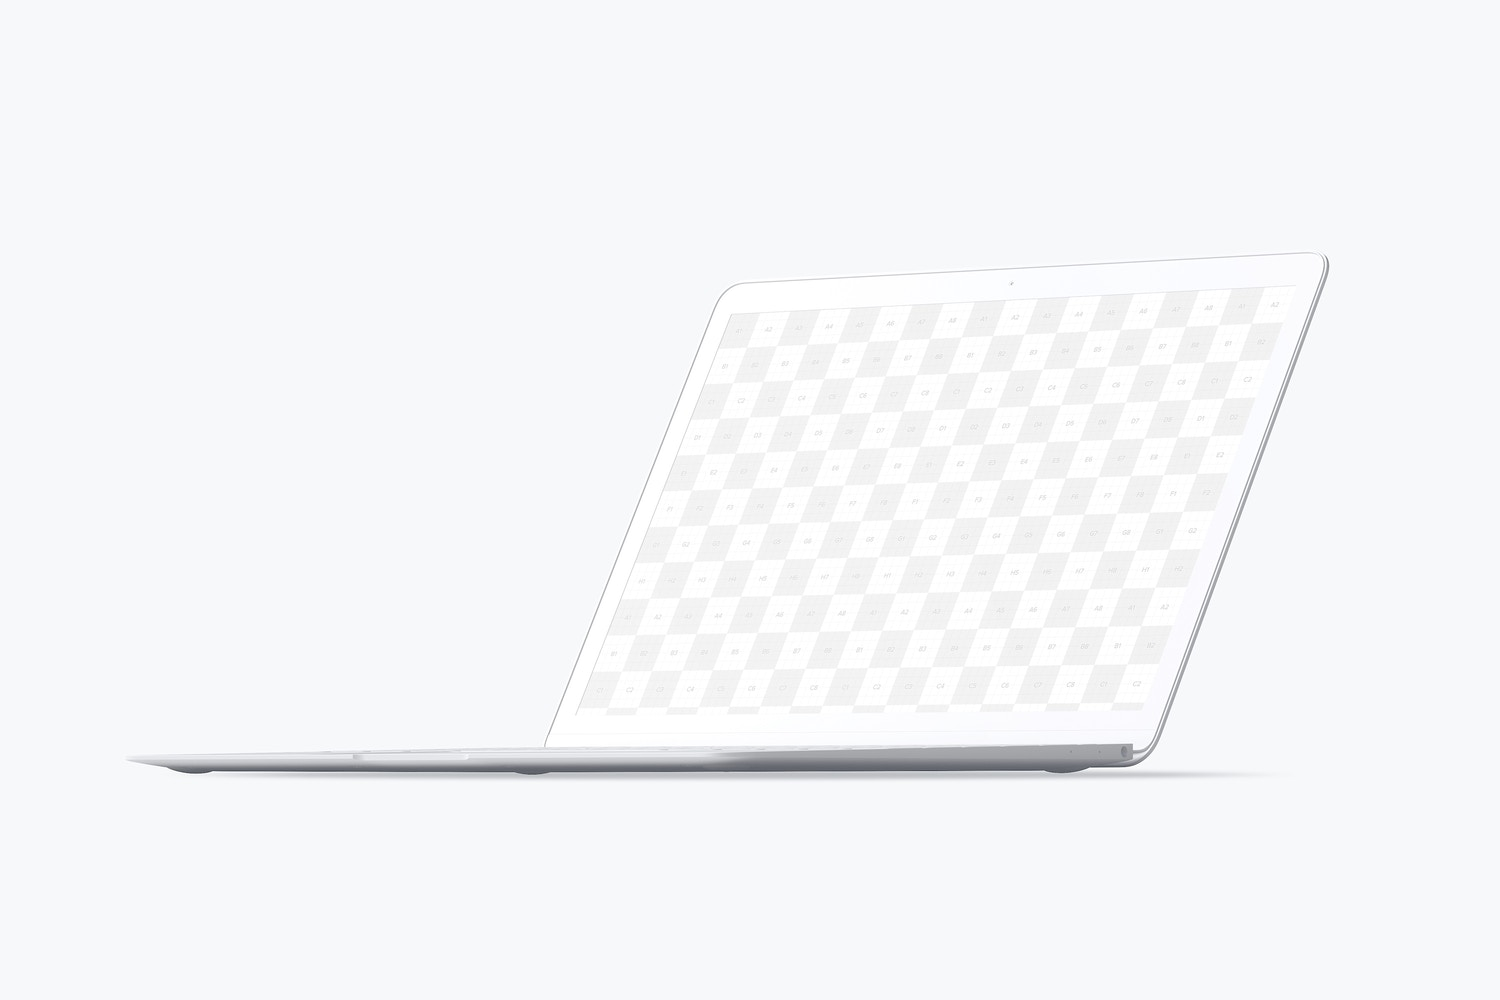 Clay MacBook Mockup, Front Right View (2) by Original Mockups on Original Mockups